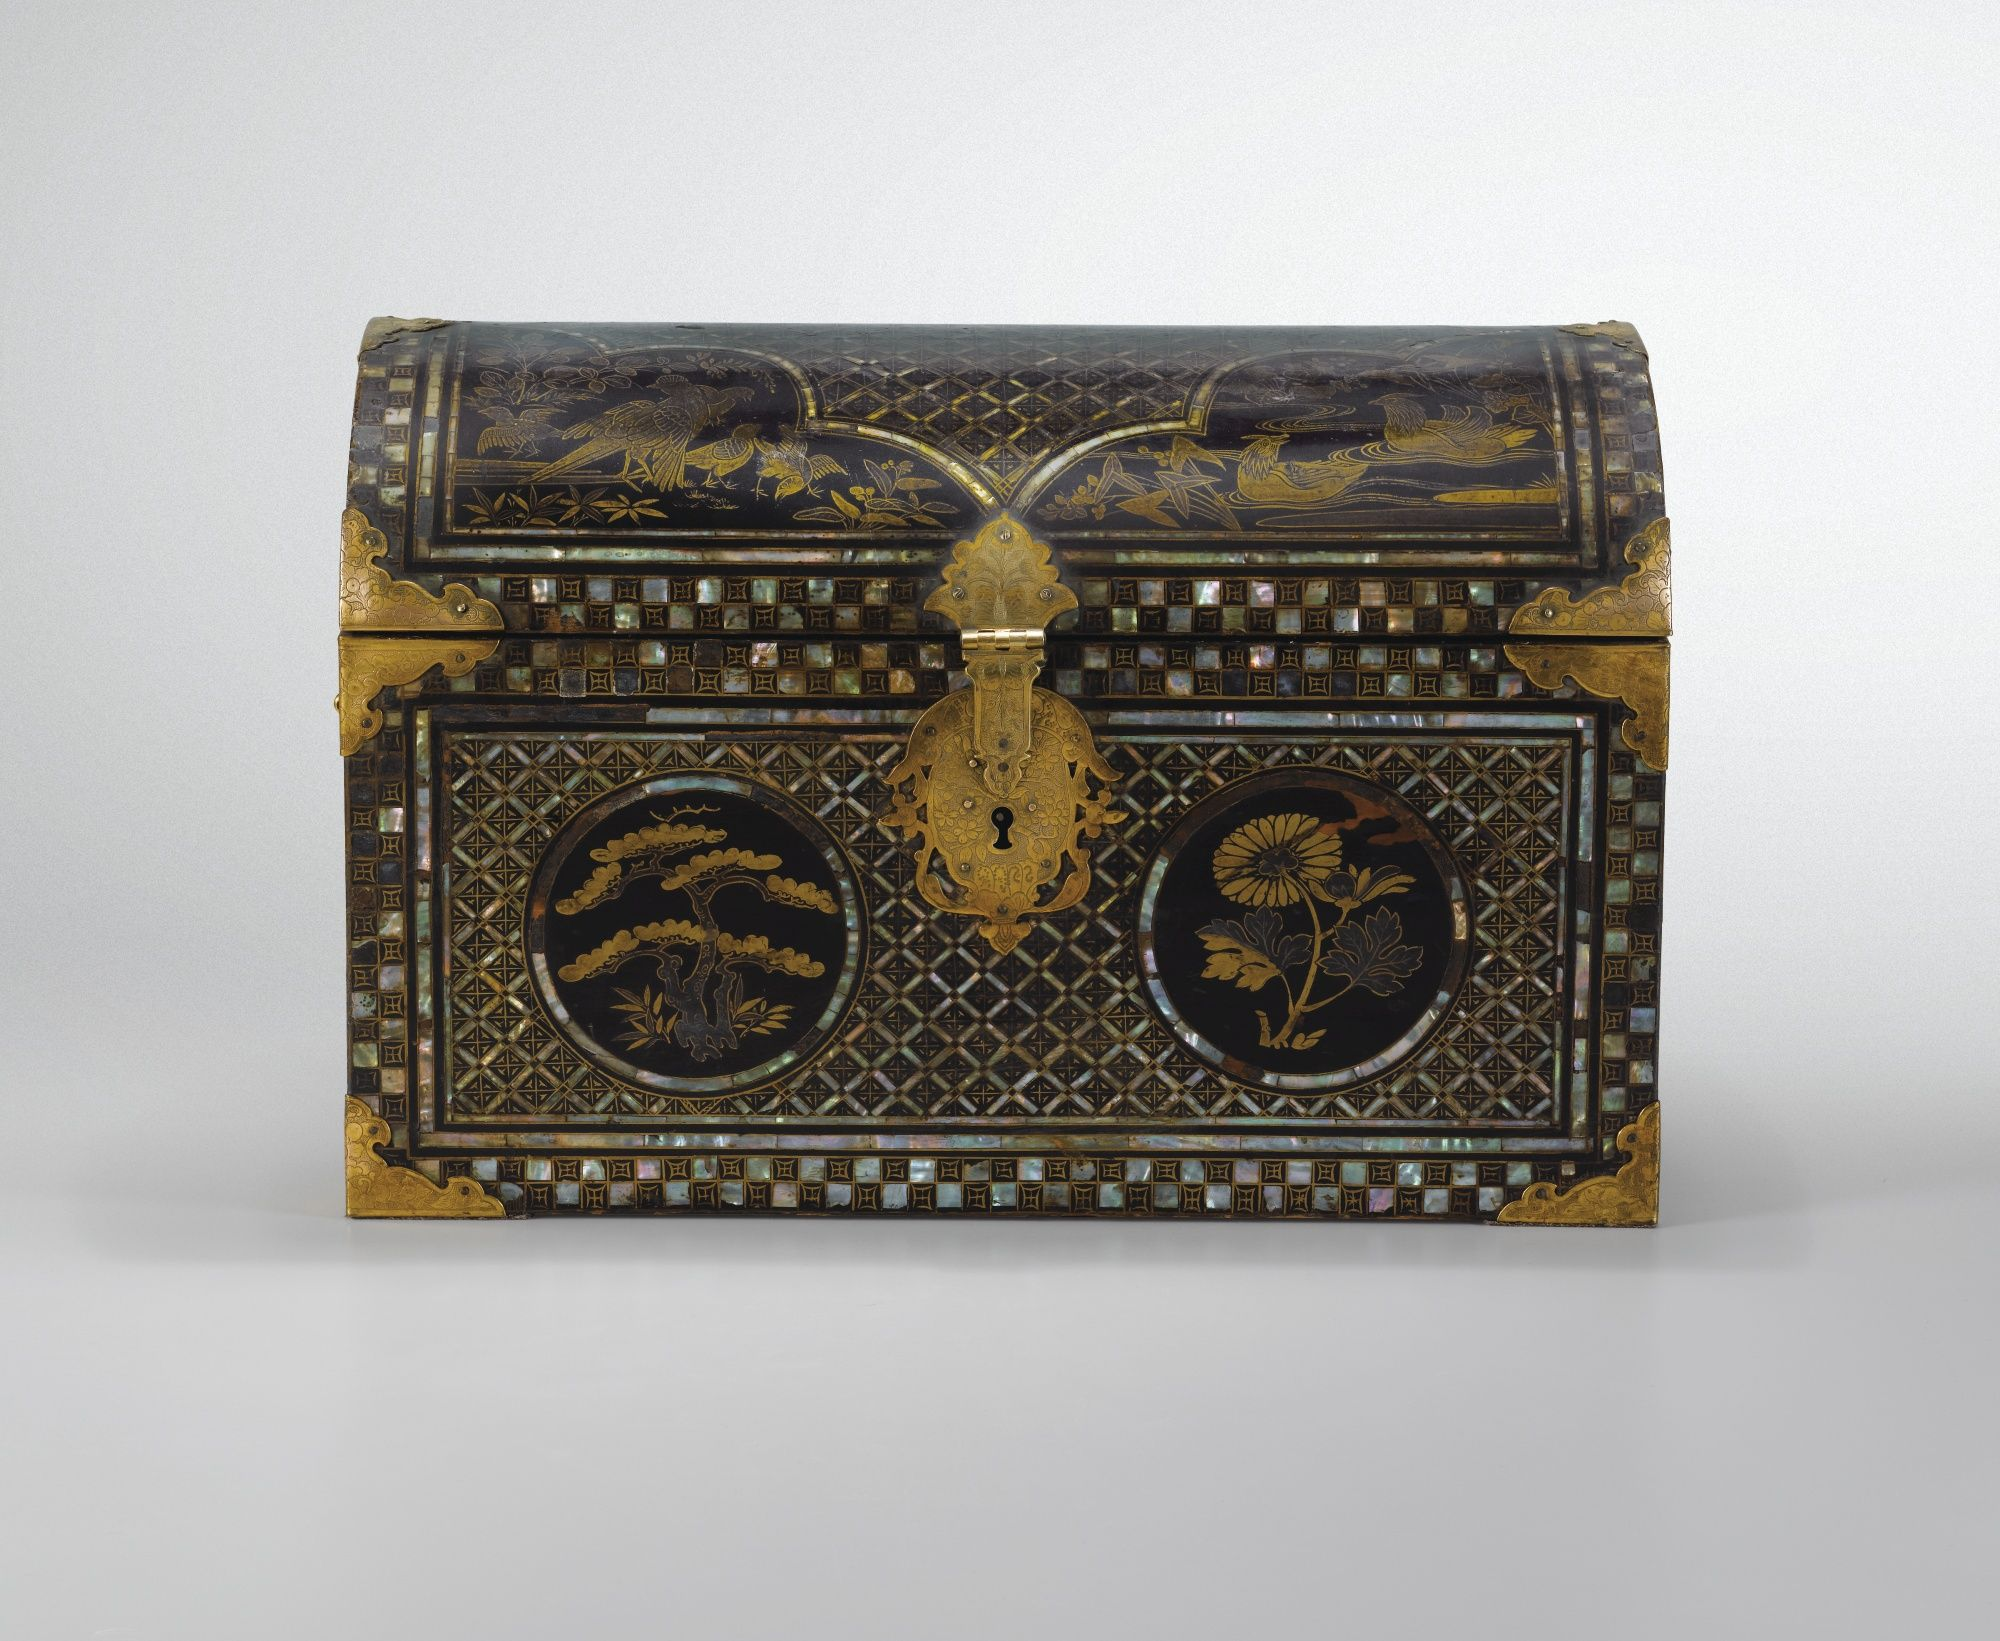 A Small Mother Of Pearl Inlaid Lacquer Chest Namban Japon Edo Period 17th 18th Century Sarg